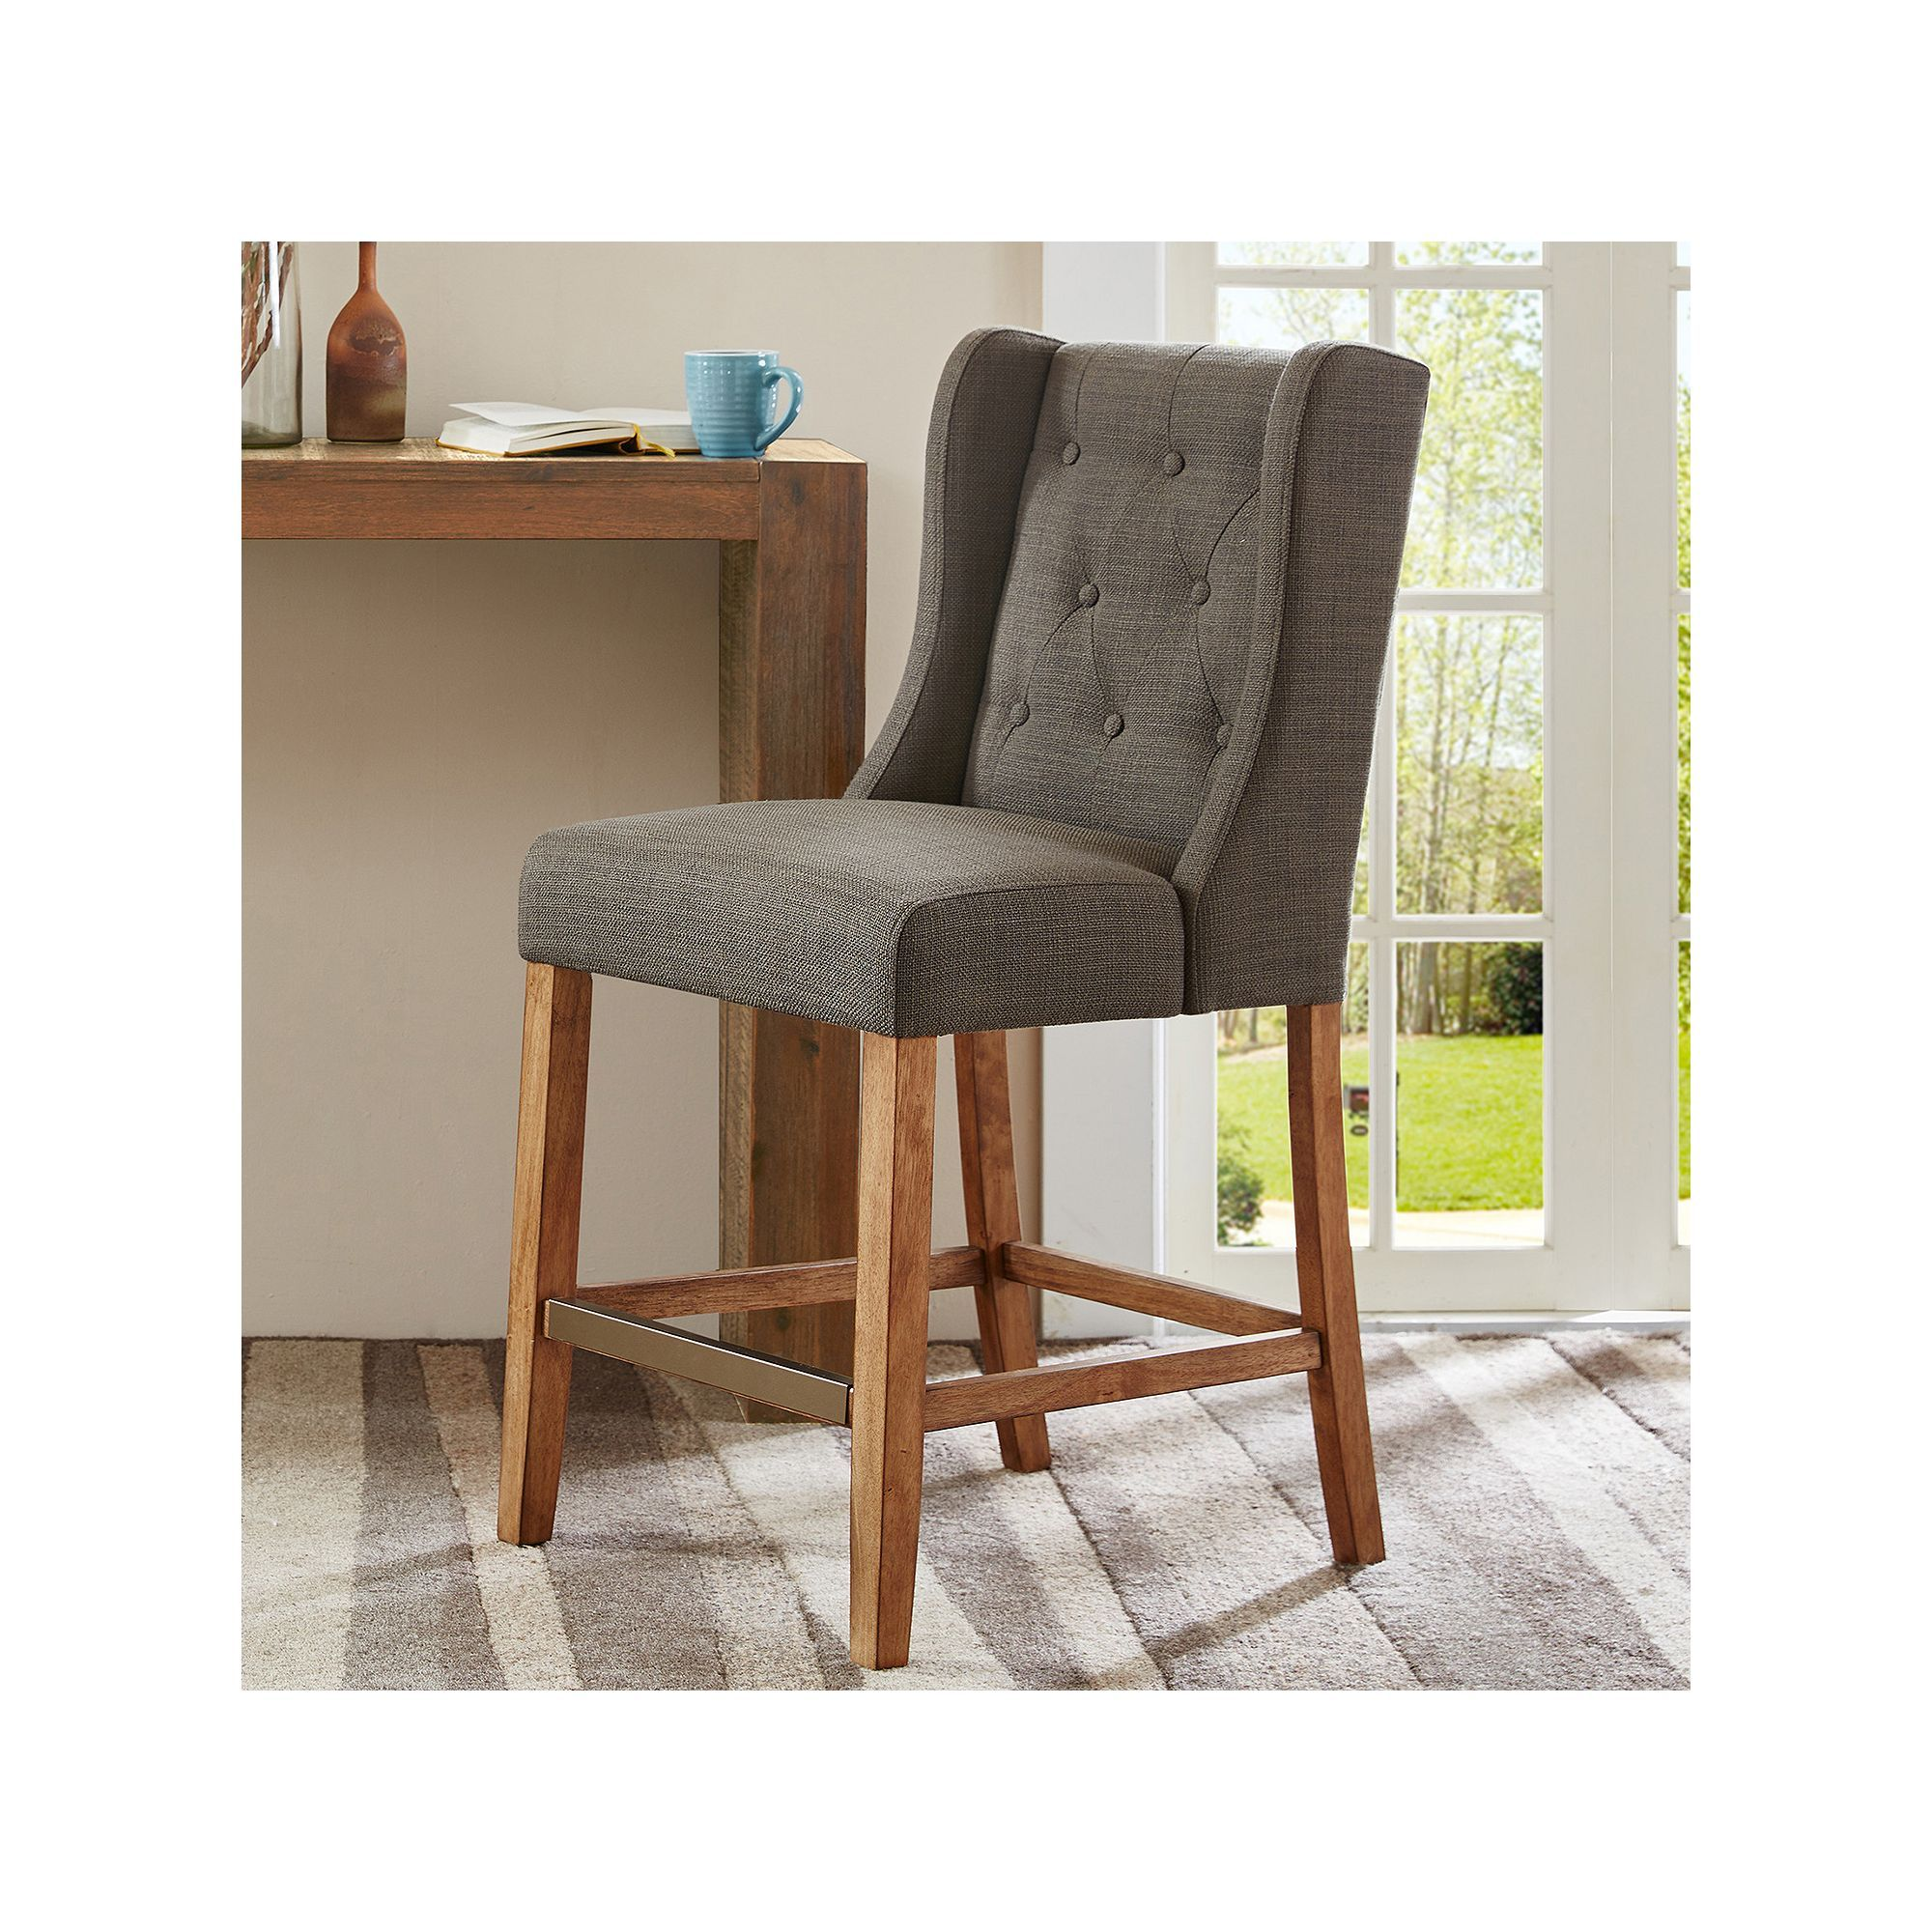 Sensational Madison Home Usa Aida Button Tufted Counter Stool Products Ibusinesslaw Wood Chair Design Ideas Ibusinesslaworg